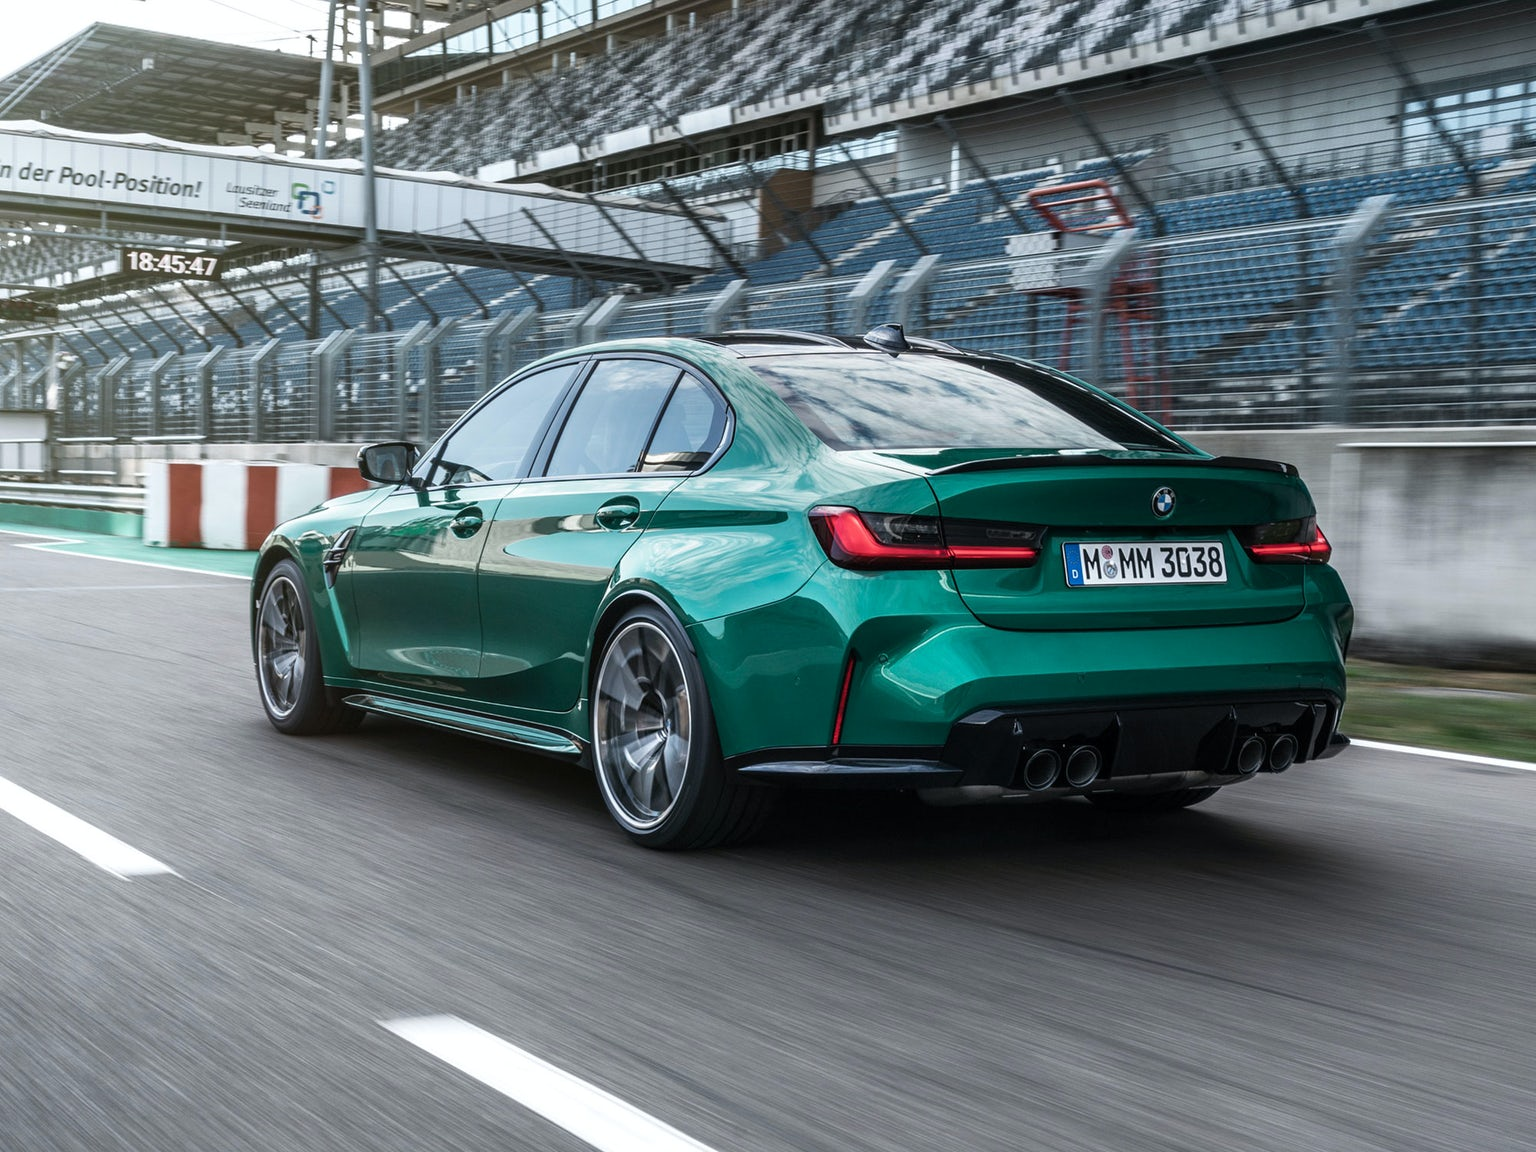 bmw-m3-competition-driving-track-green-rear-1.jpg